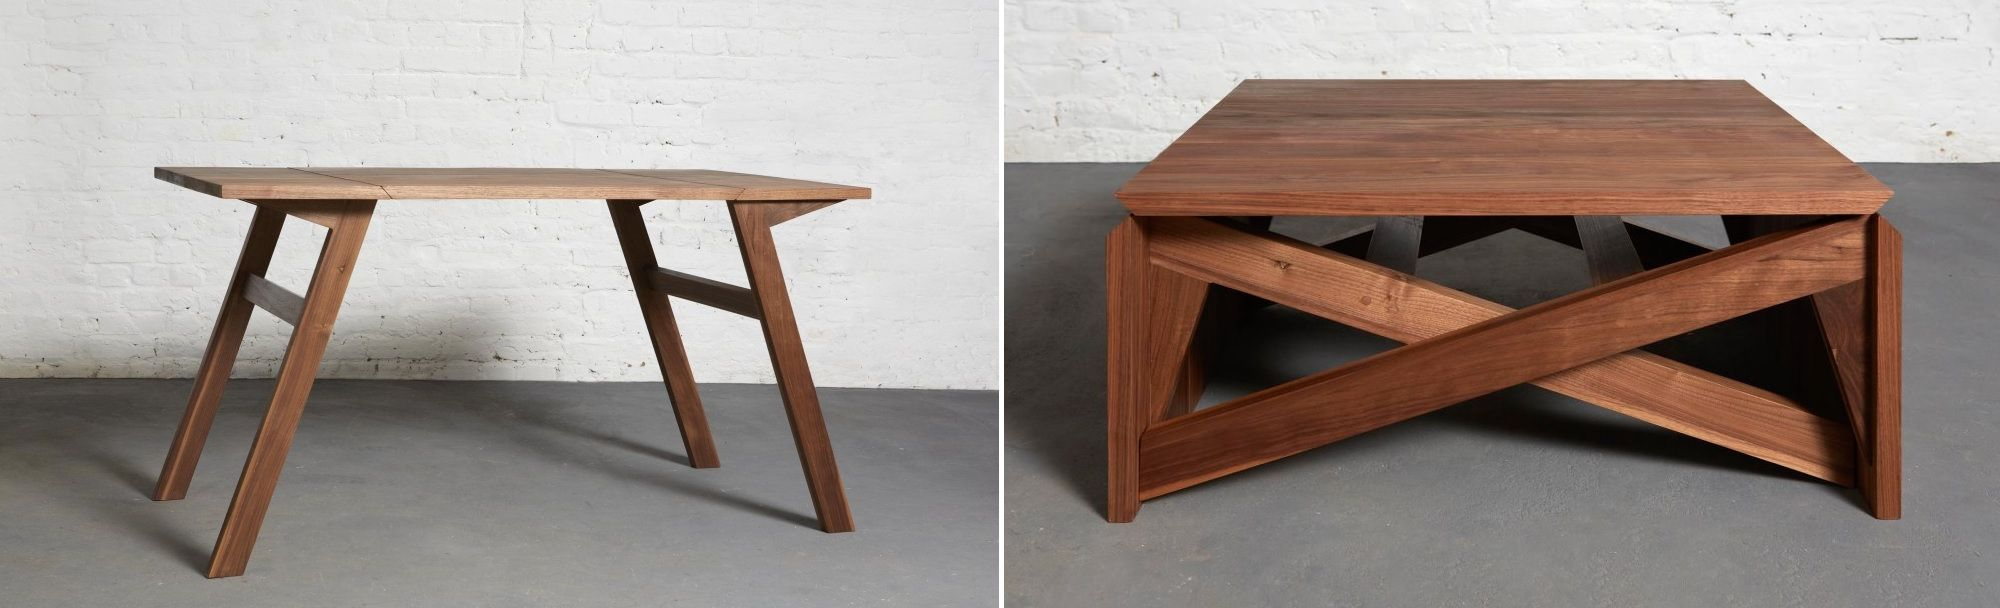 Wood covertible coffee table